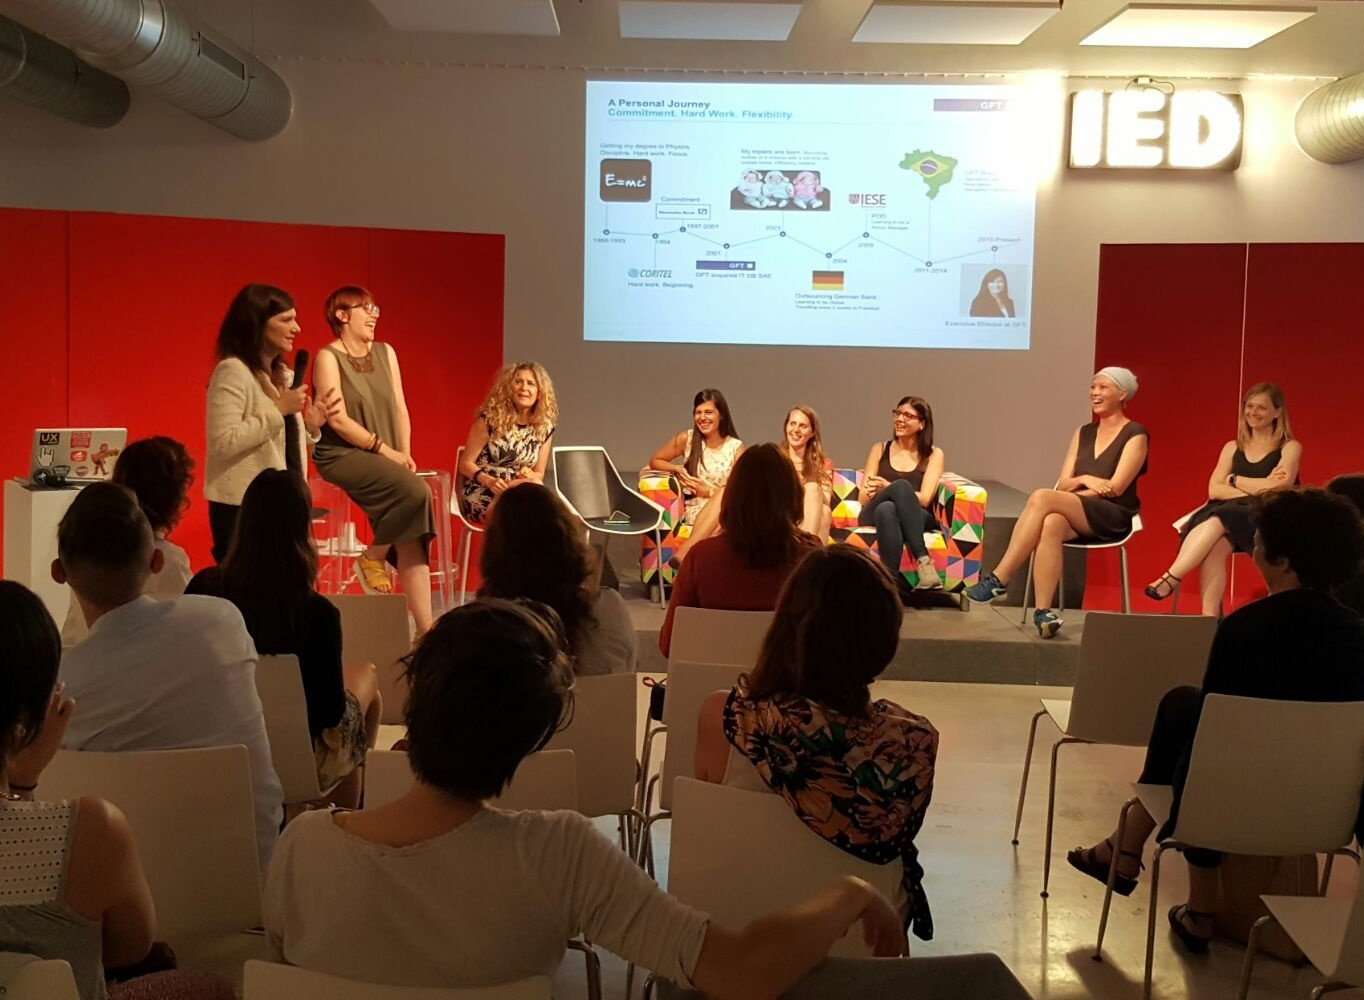 """Importance of women in business leadership through representative experiences """"Women in Design & Tech"""" @webvisions https://t.co/bdsqXnRPfx"""